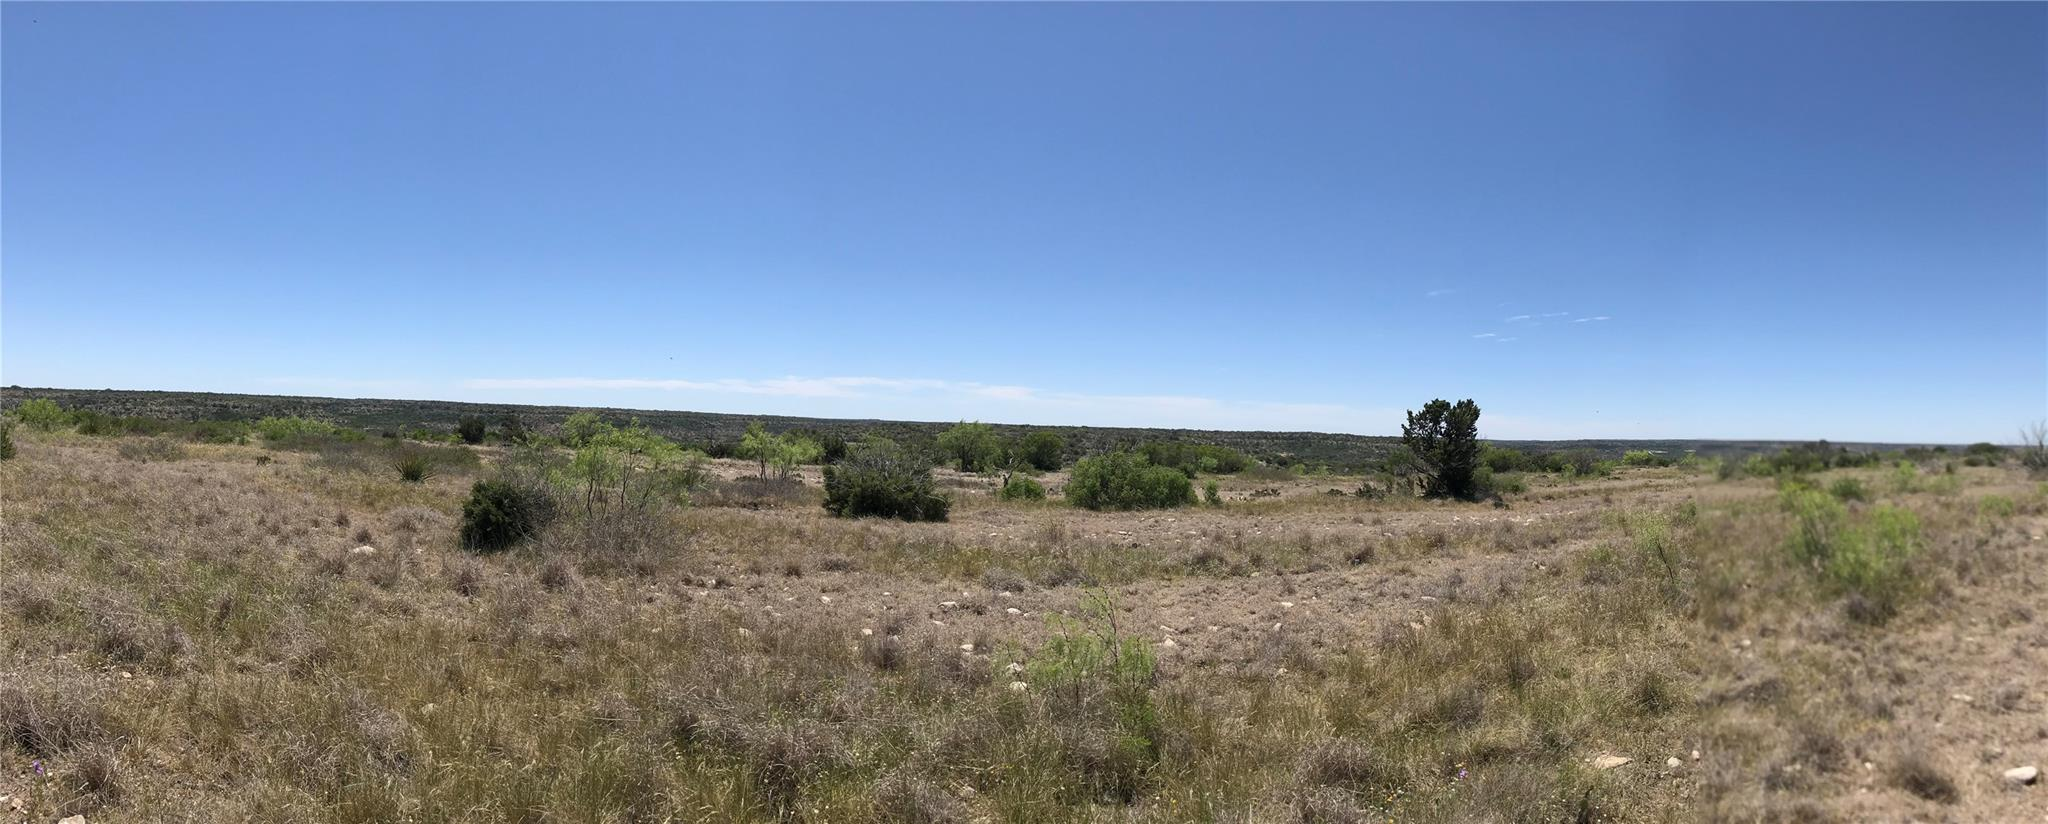 TBD Taylor Box RD Property Photo - Sonora, TX real estate listing